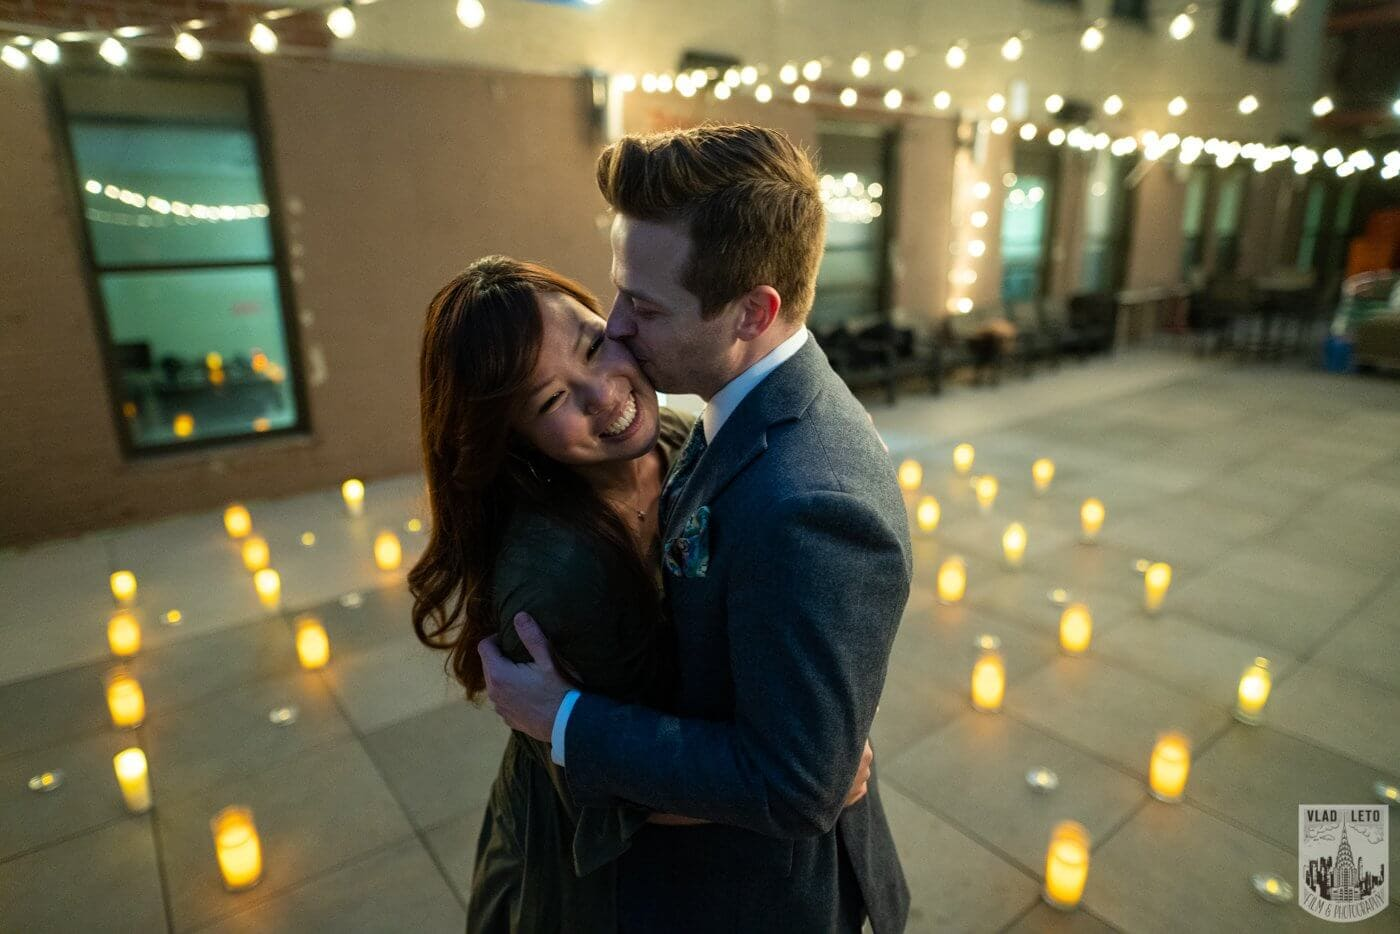 Photo 7 Wedding proposal on a private rooftop with Empire State building view. | VladLeto